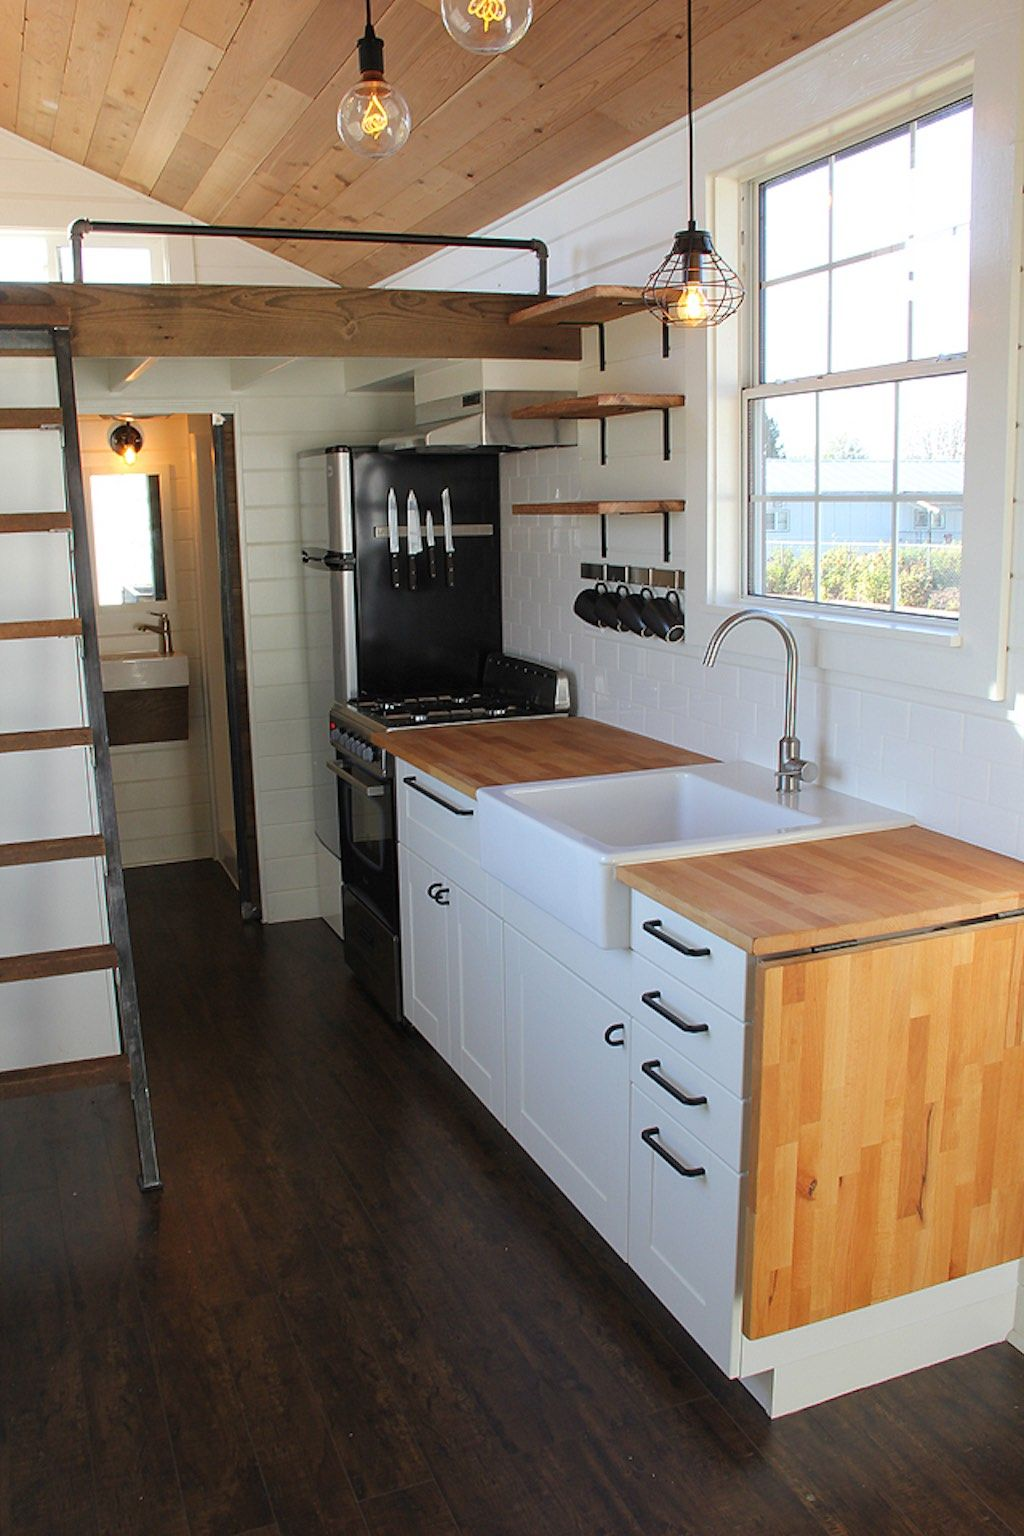 Kitchen Design Ideas For Small House Rustic Industrial Tiny House Living Tiny House Tiny